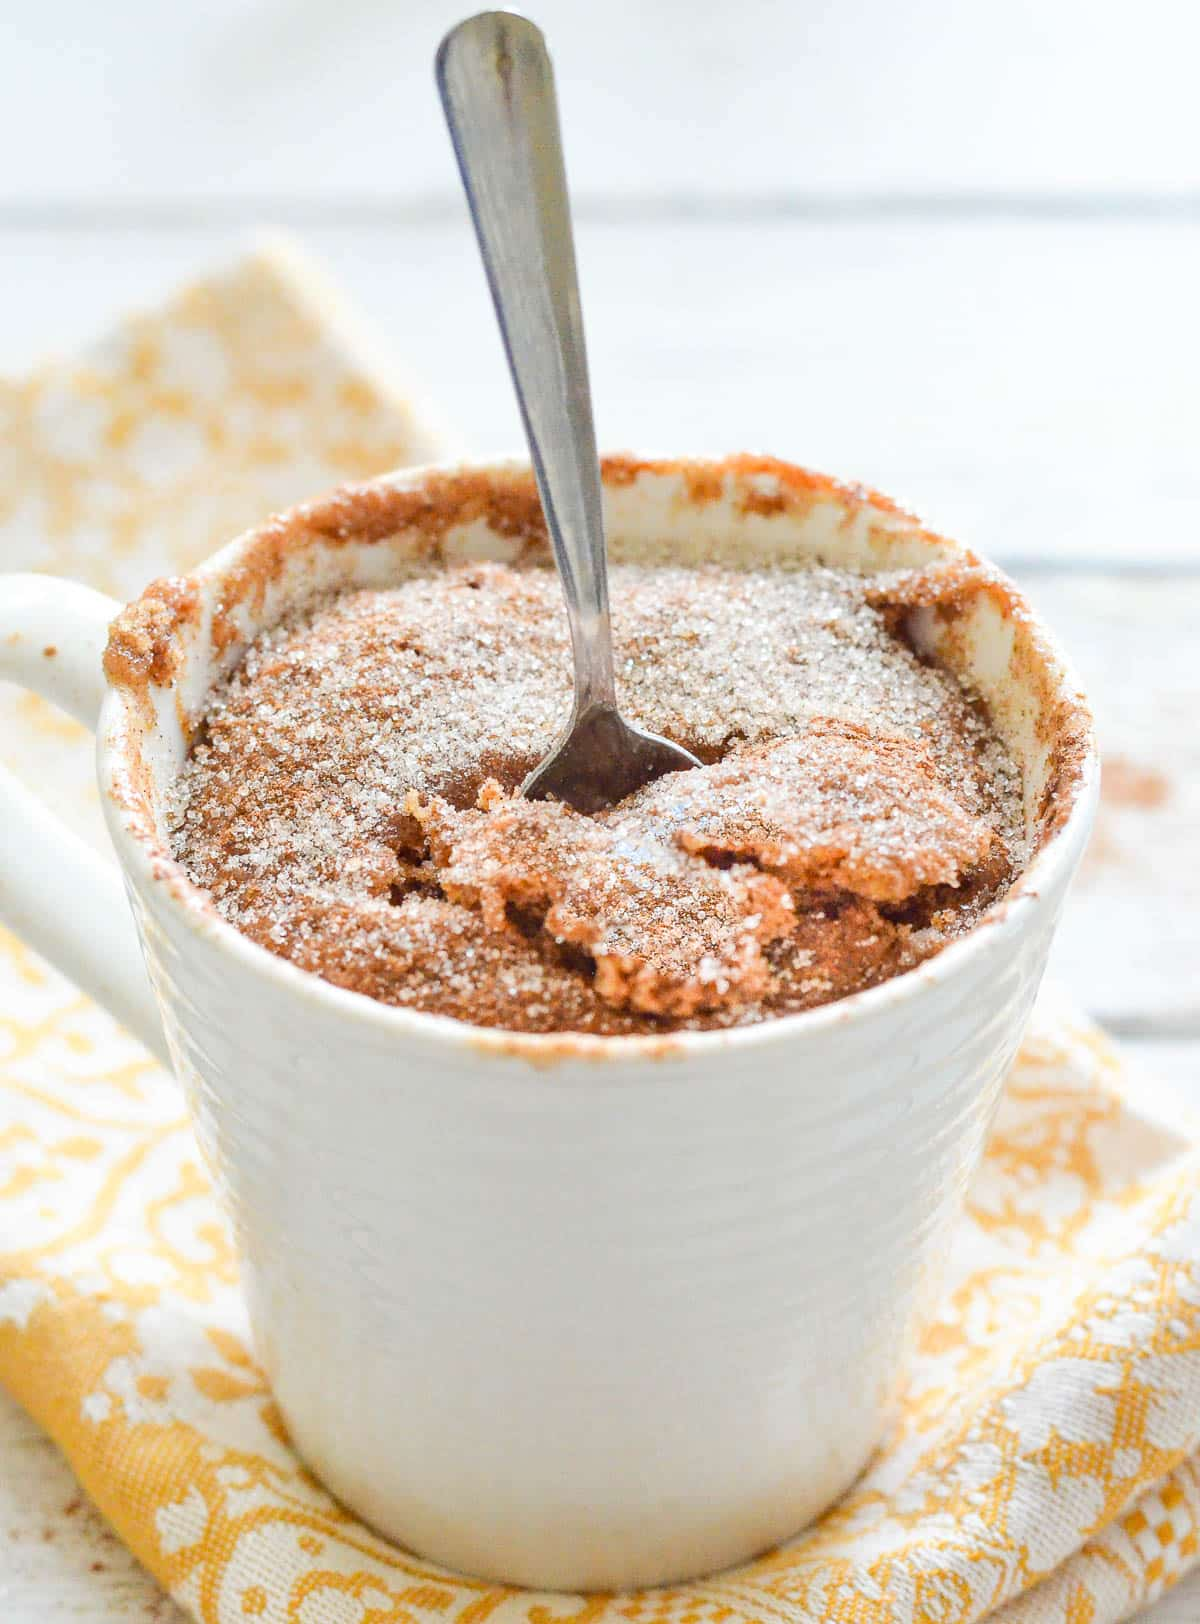 a mug cake with a spoon in it